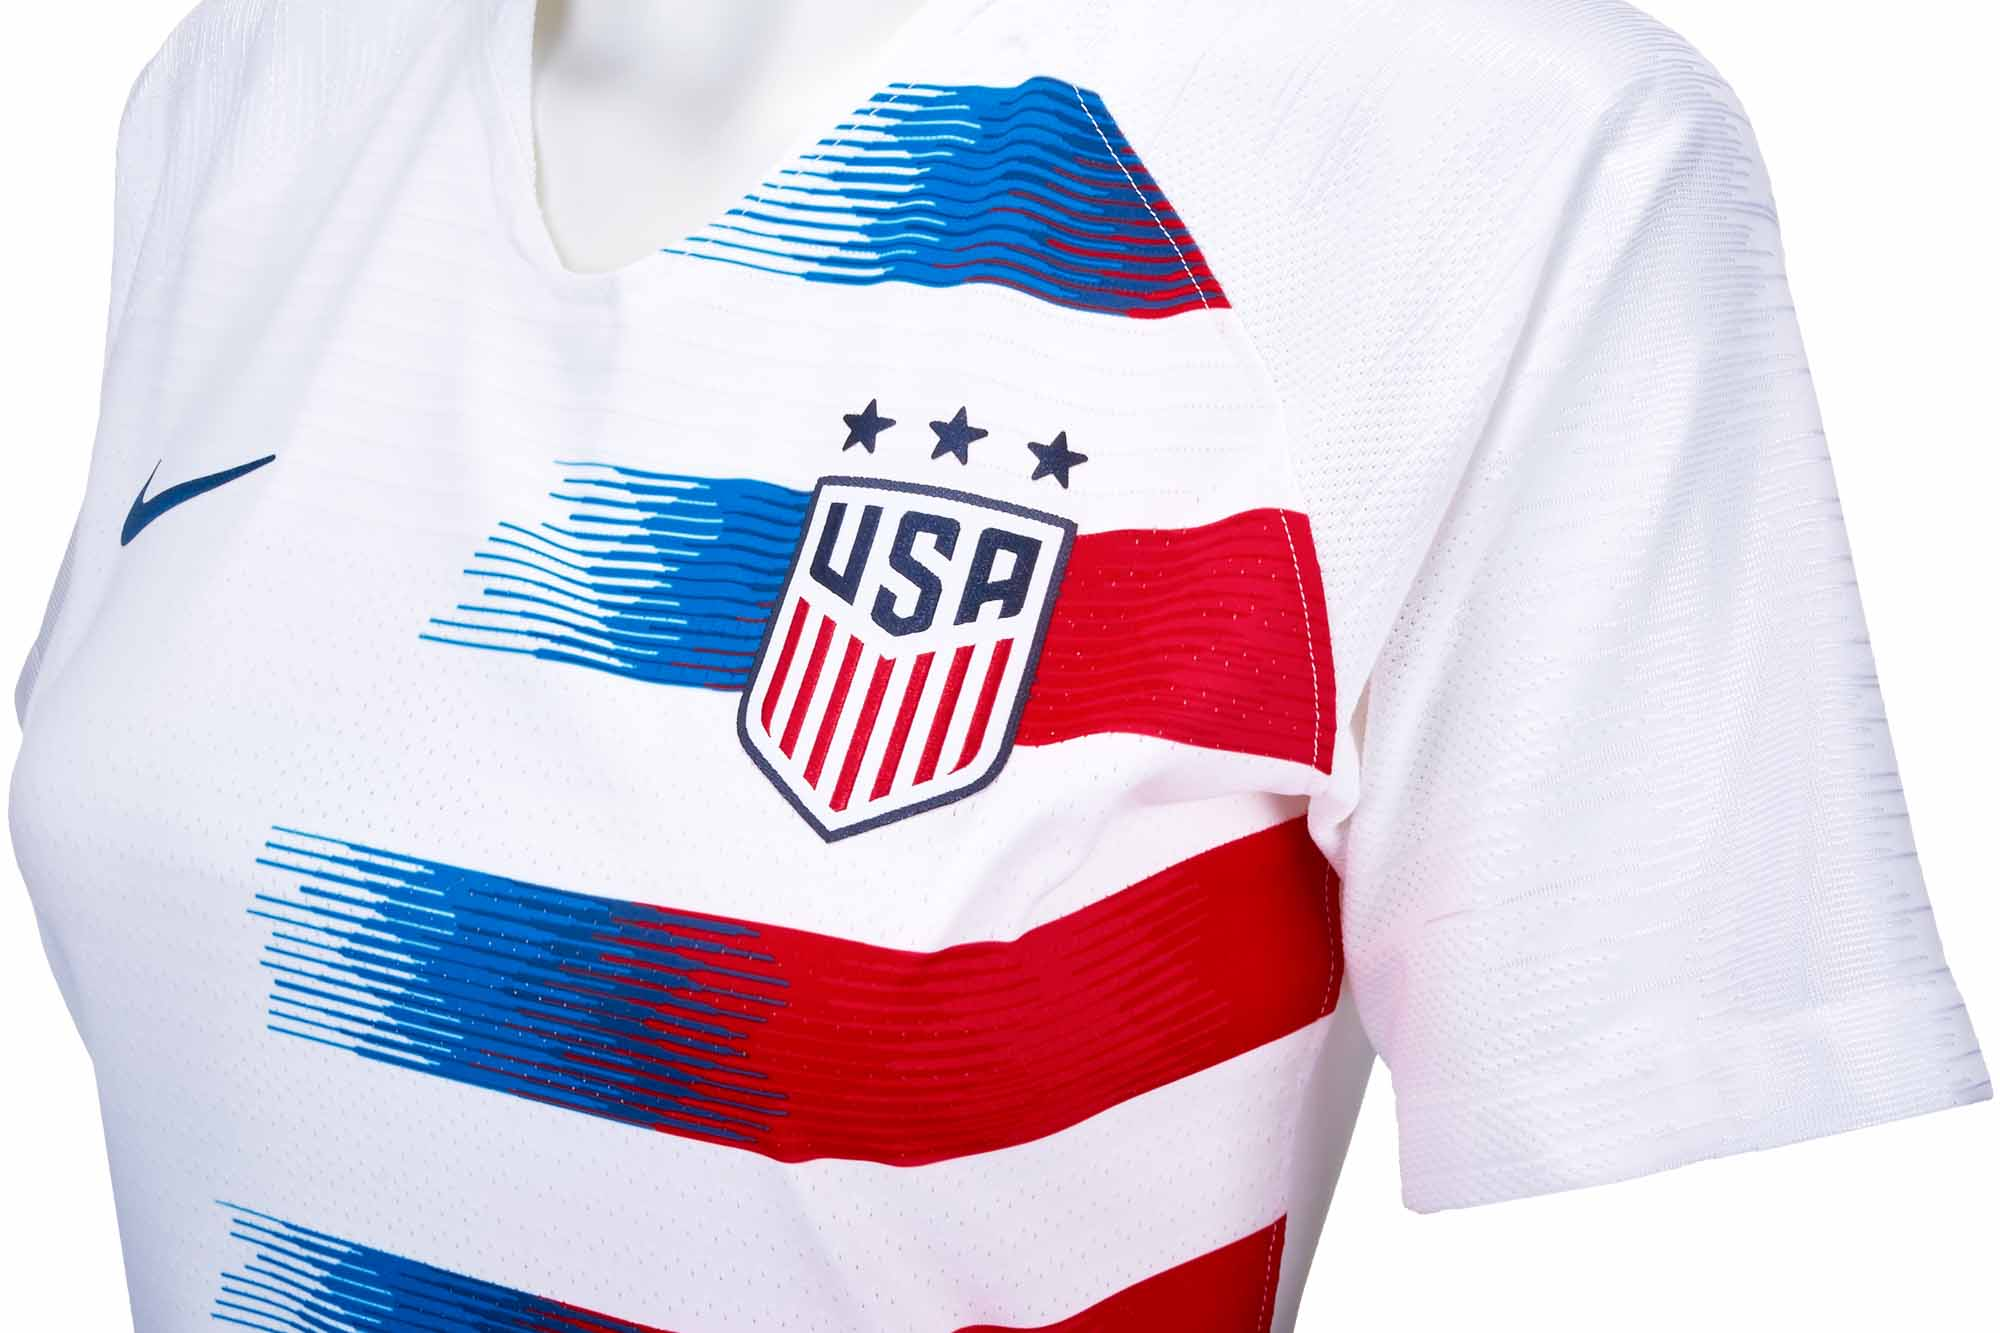 1df5e0c02 Women's Nike USA Home Match Jersey 2018-19 - SoccerPro.com